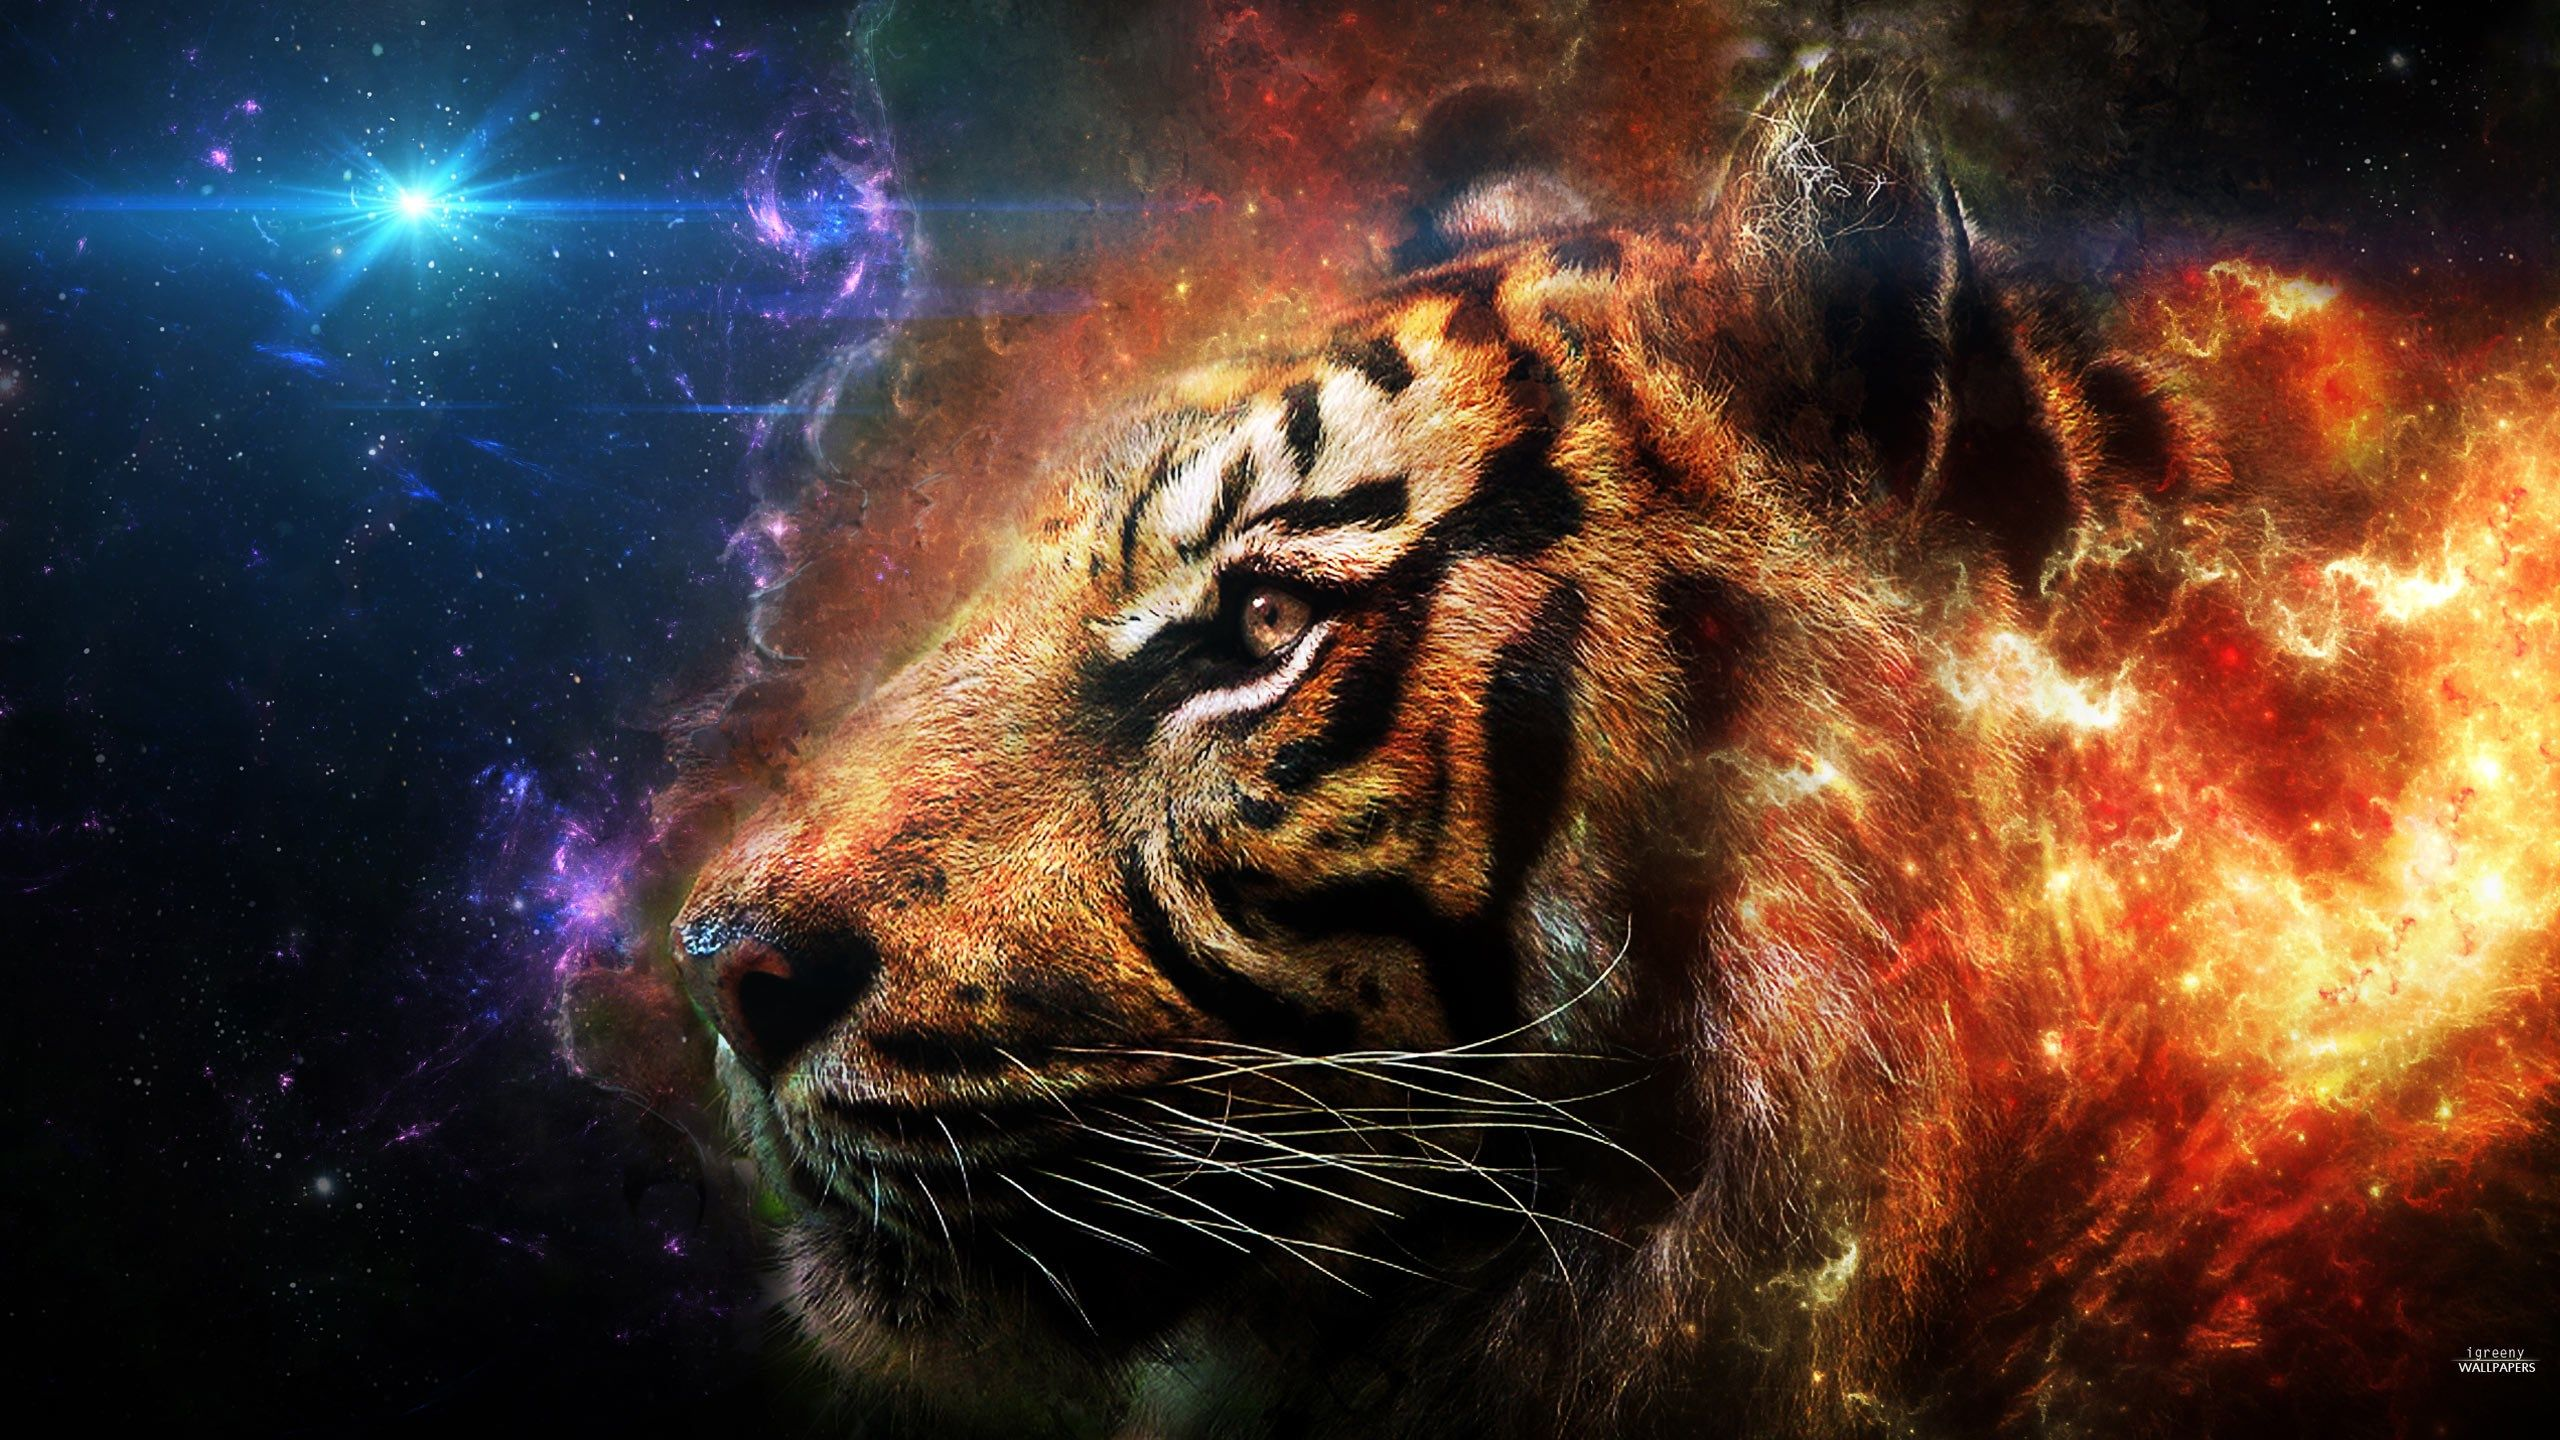 2560x1440 Free Desktop Backgrounds For Tiger Scream Tiger